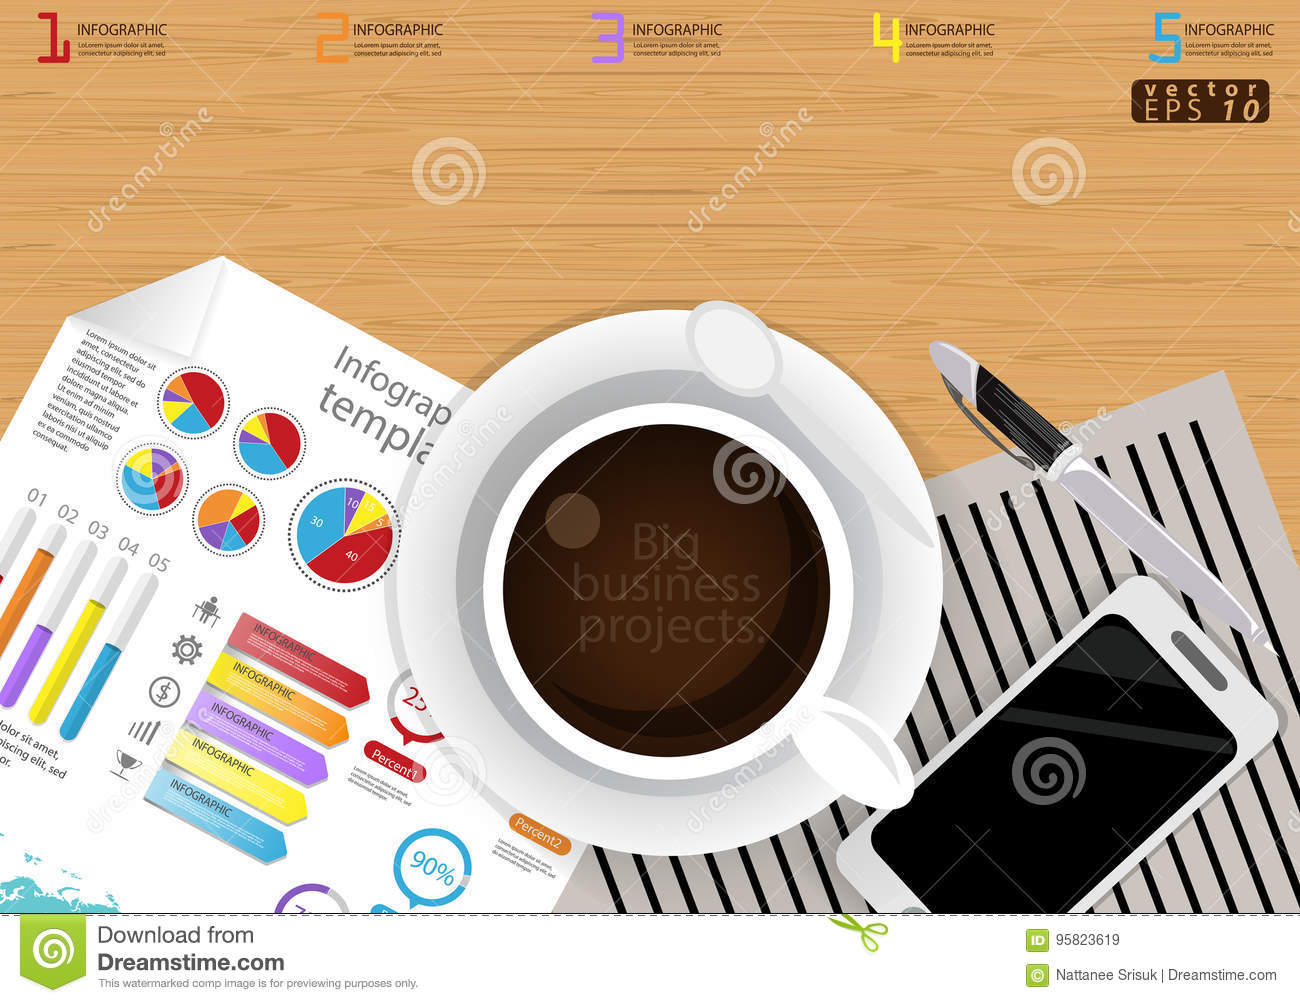 hight resolution of illustration infographic template business modern idea and concept with coffee cup paper diary pen cellphone colorful icon flat design vector